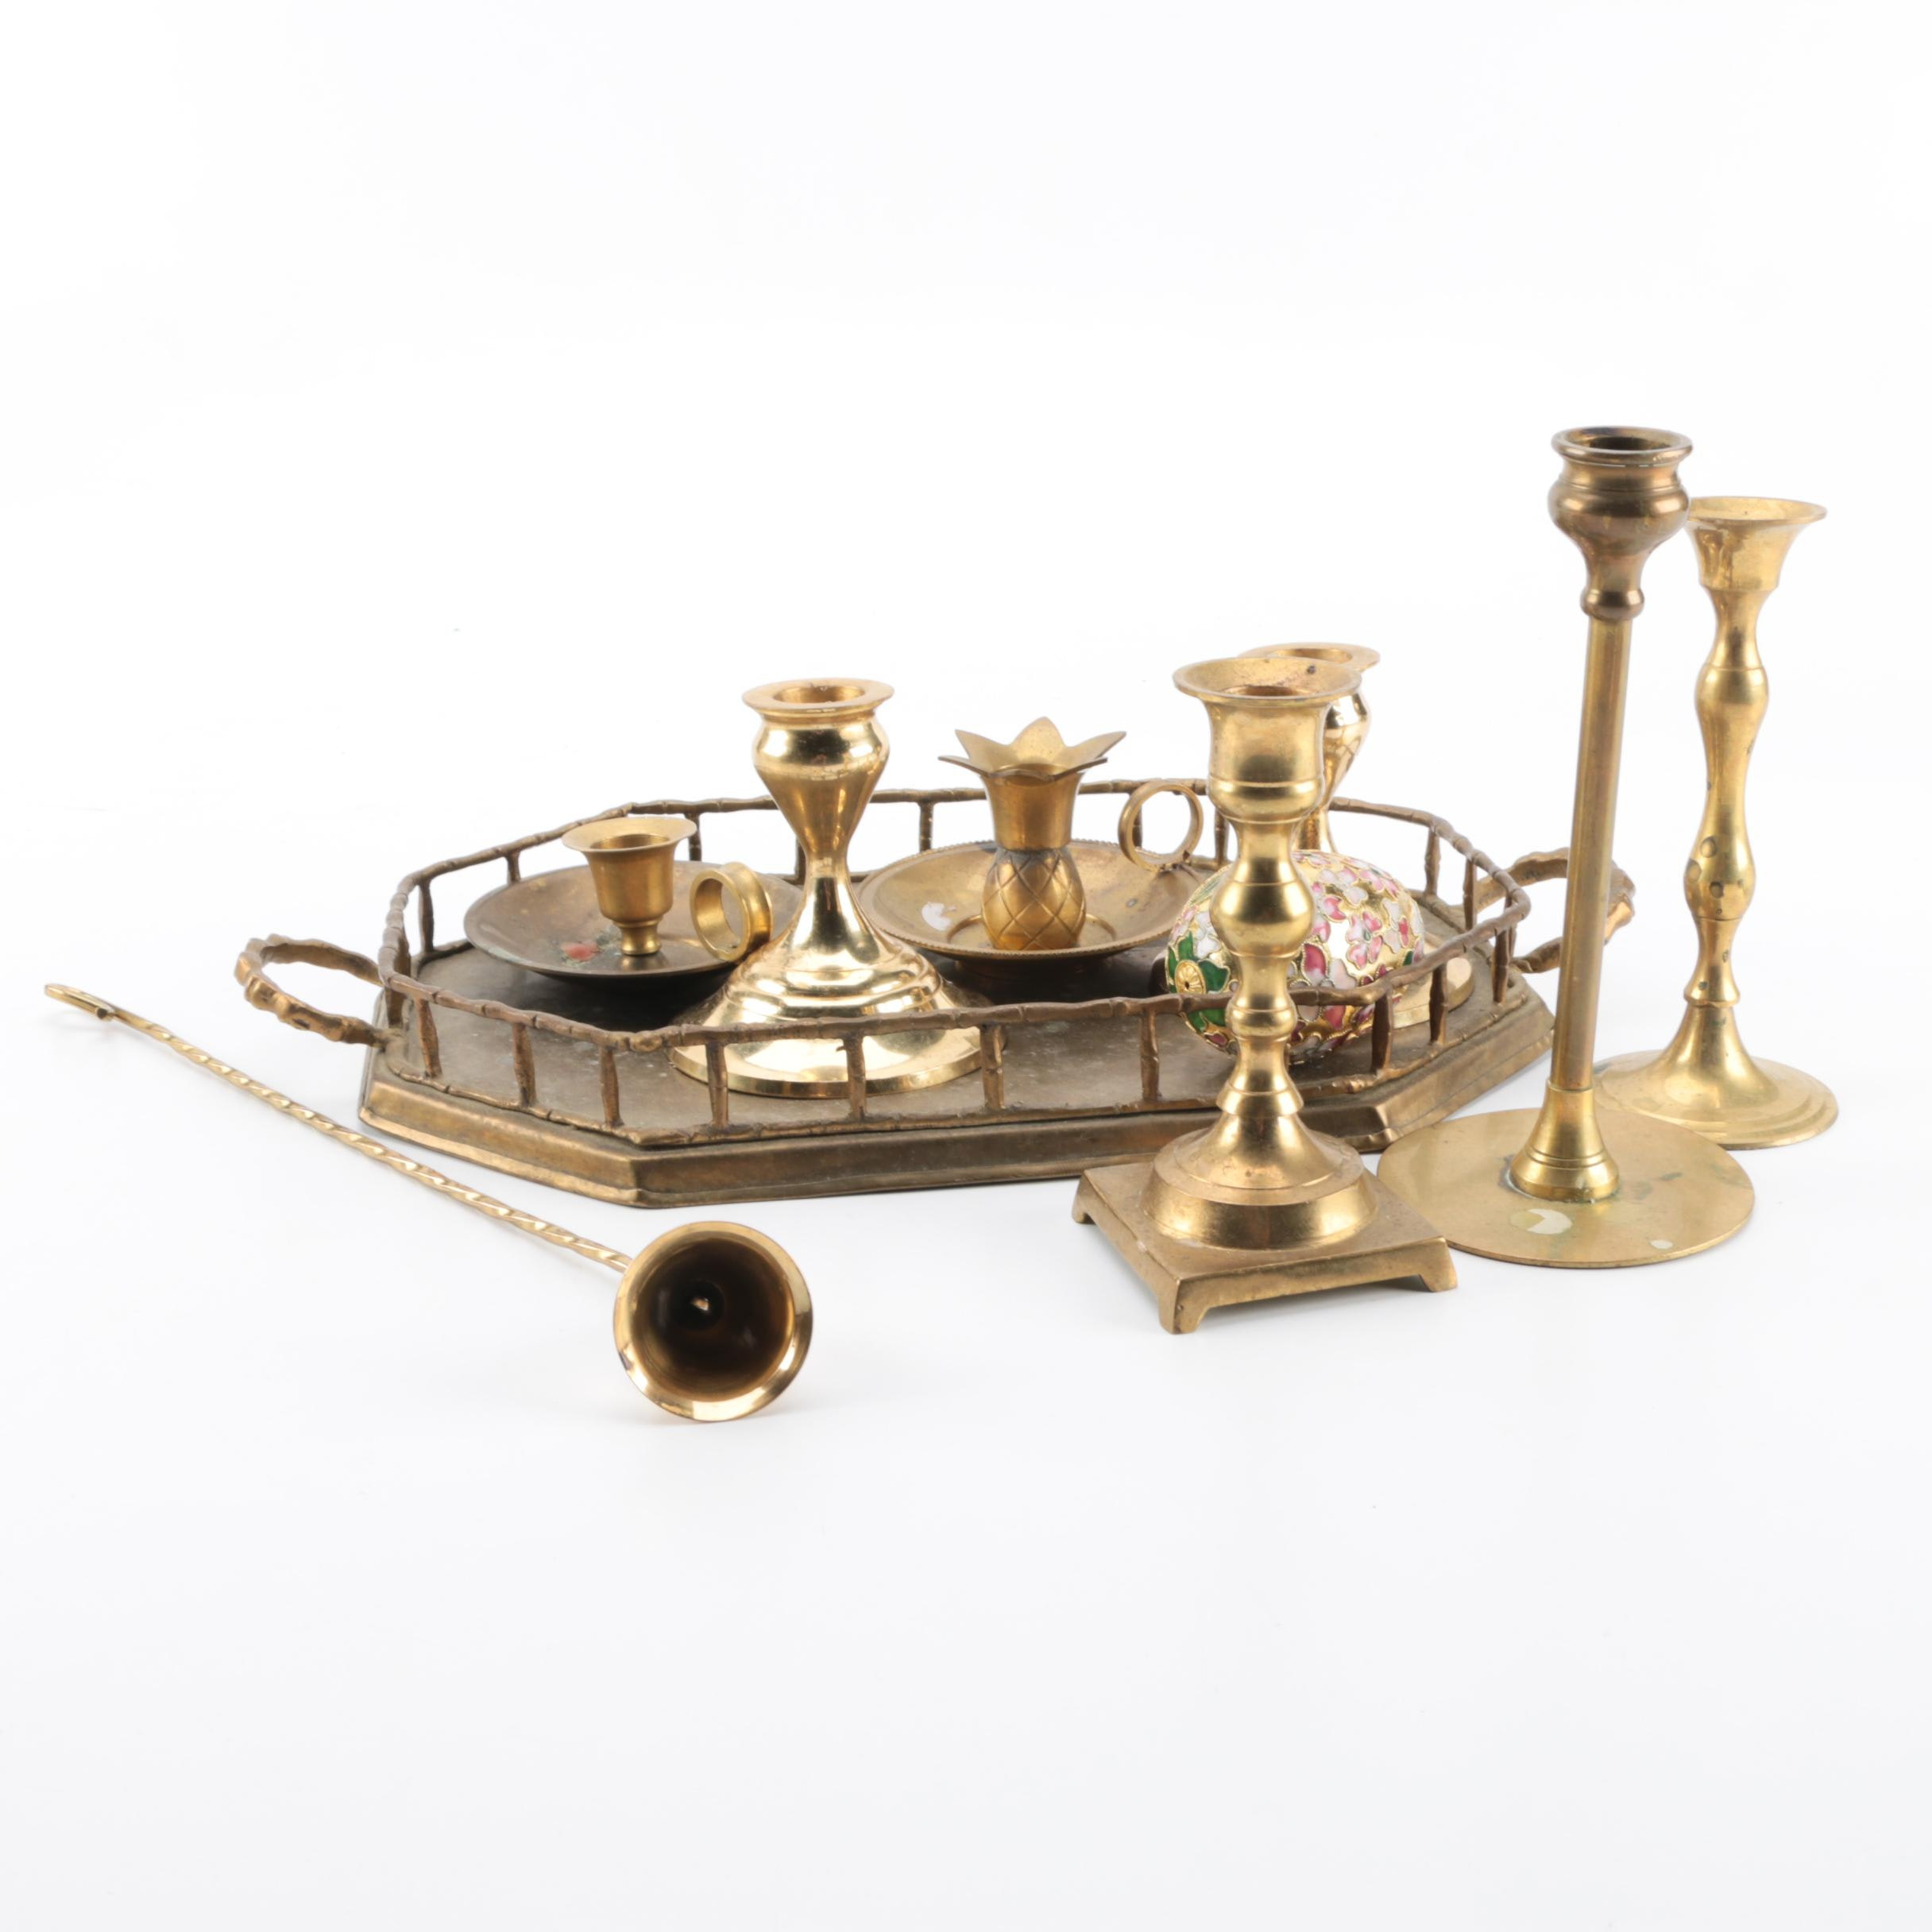 Brass Candleholders with Other Home Decor